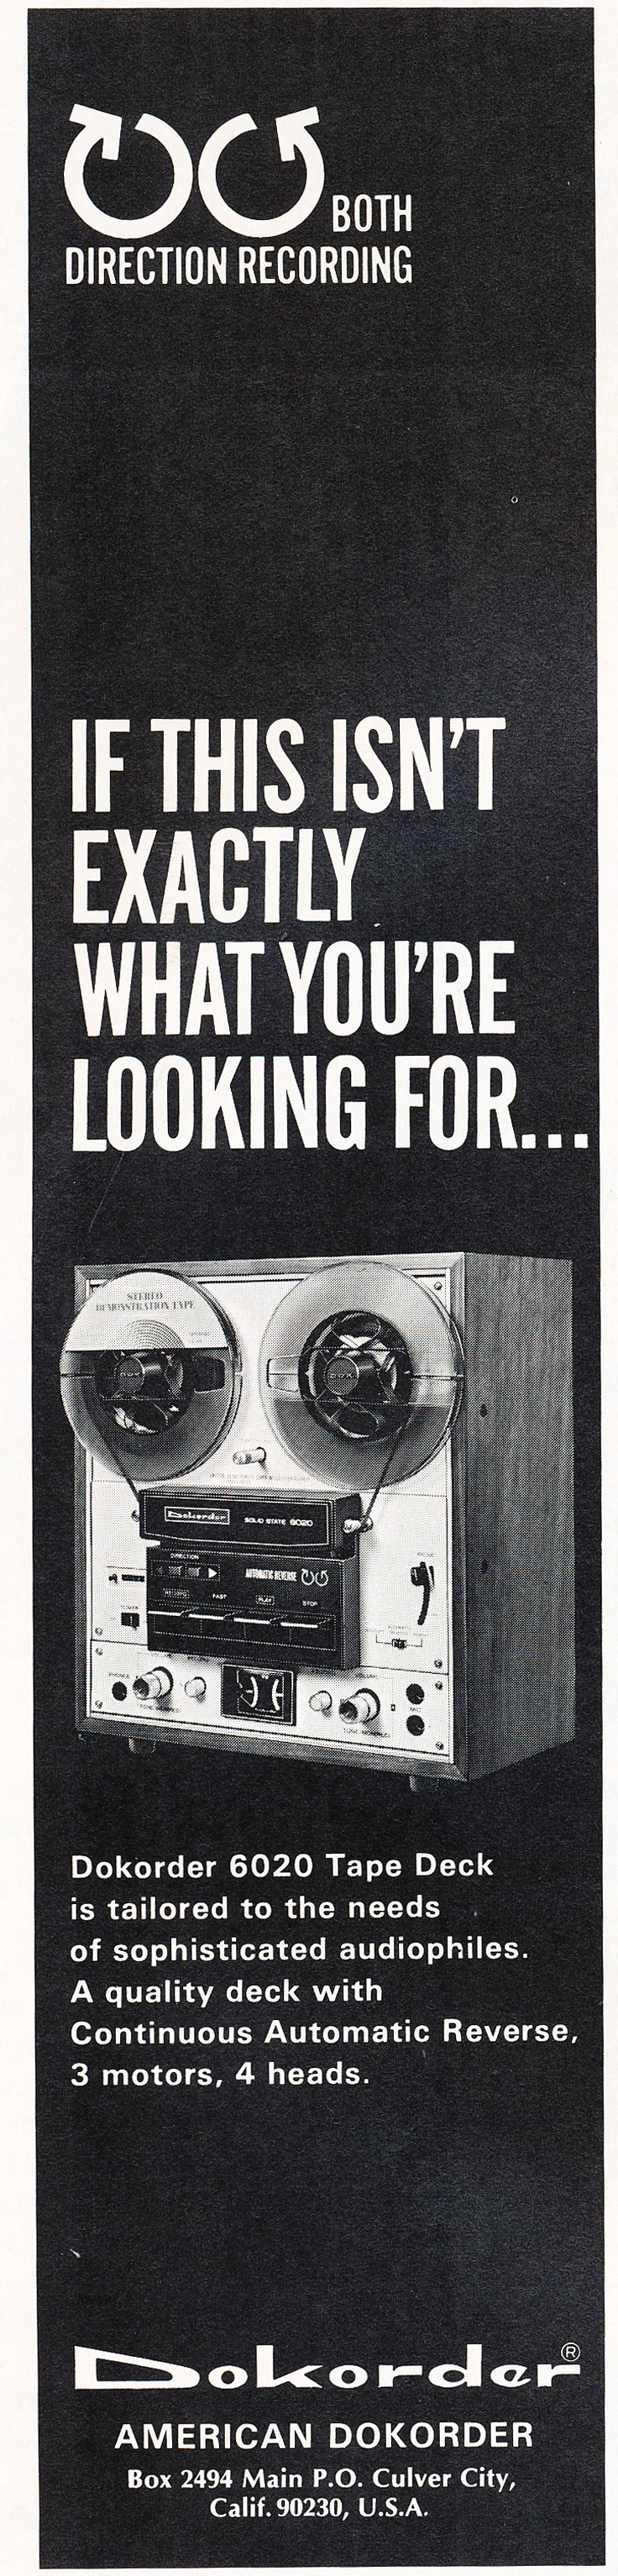 1976 ad for the Dokorder 6020 reel to reel tape recorder in the Reel2ReelTexas vintage recording collection